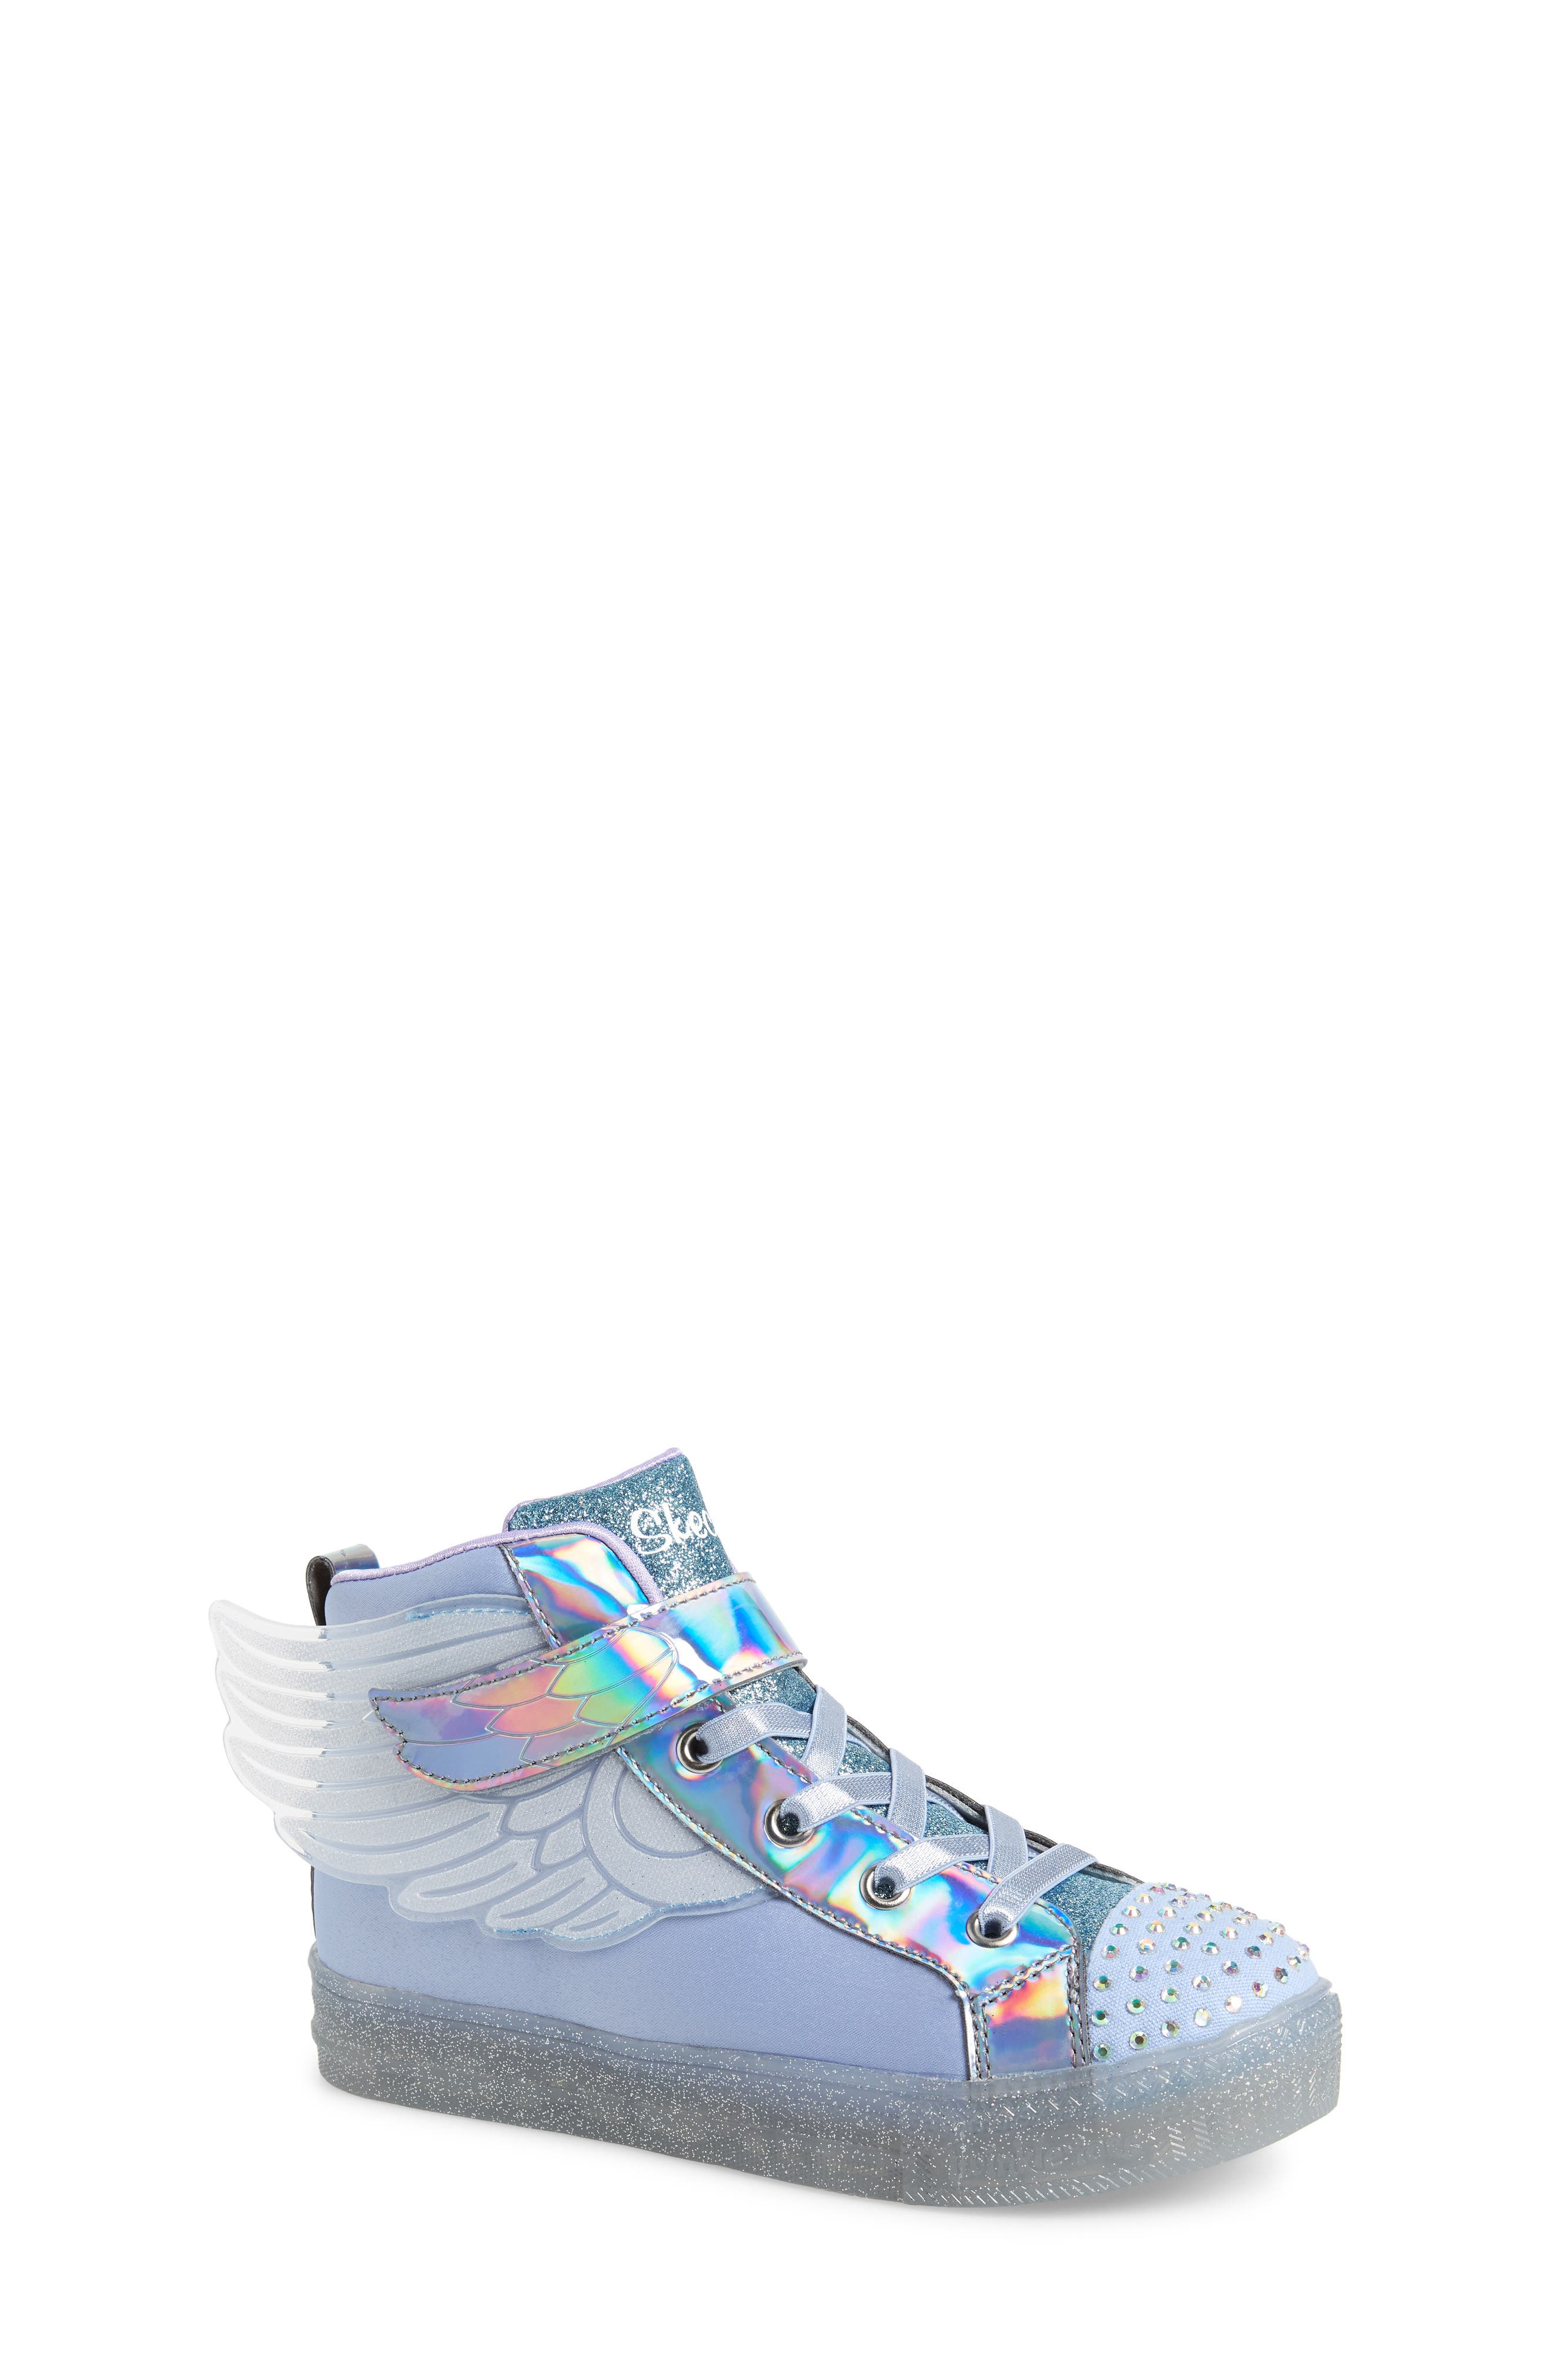 SKECHERS, Twinkle Toes Light-Up Sneaker, Main thumbnail 1, color, PERIWINKLE